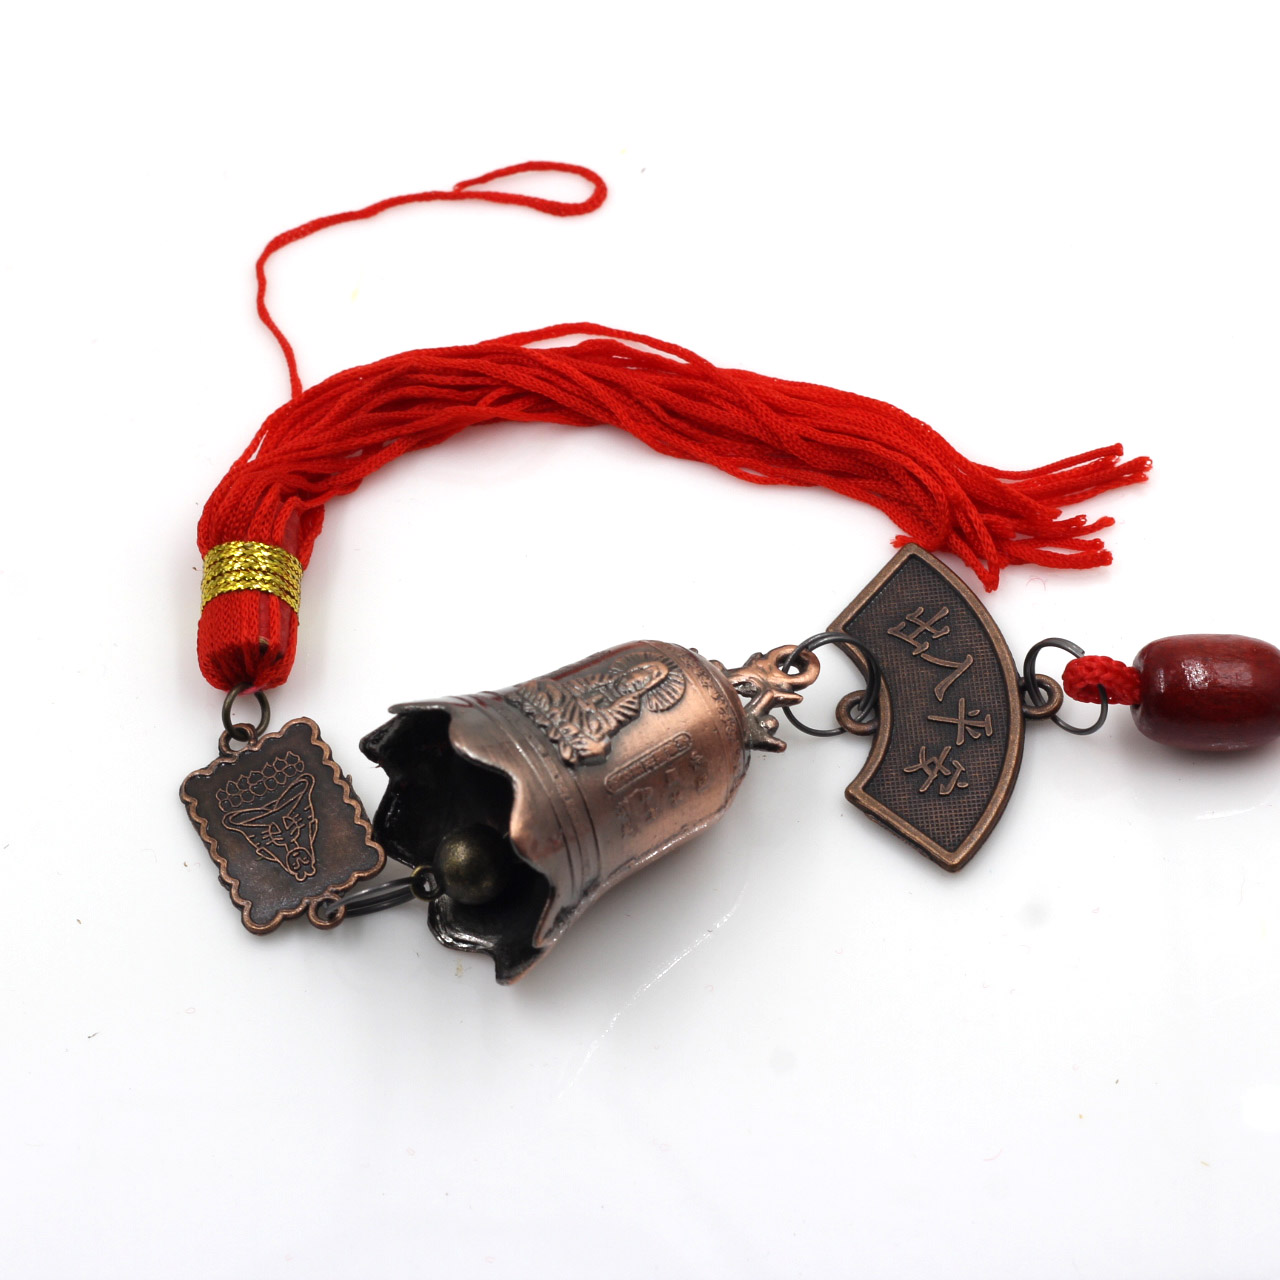 China Tibetan Buddhism Goddess Of Mercy Buddhist Temple Feng Shui Bell Wind Chime For Good Luck Fortune Home Car Hanging Decor